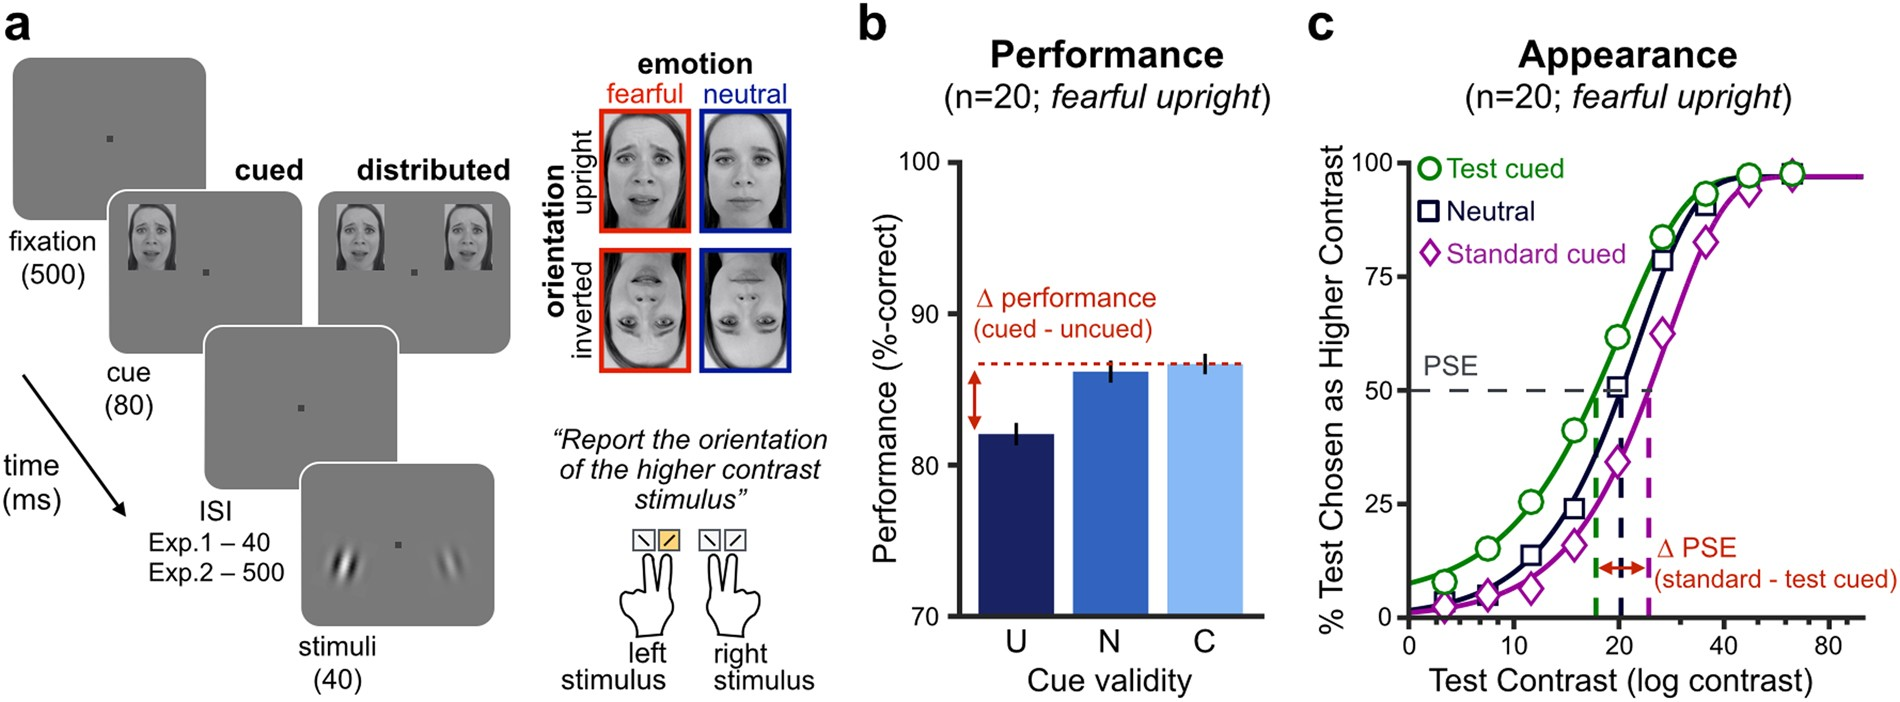 Anxiety May Alter Processing Of >> Emotion And Anxiety Potentiate The Way Attention Alters Visual